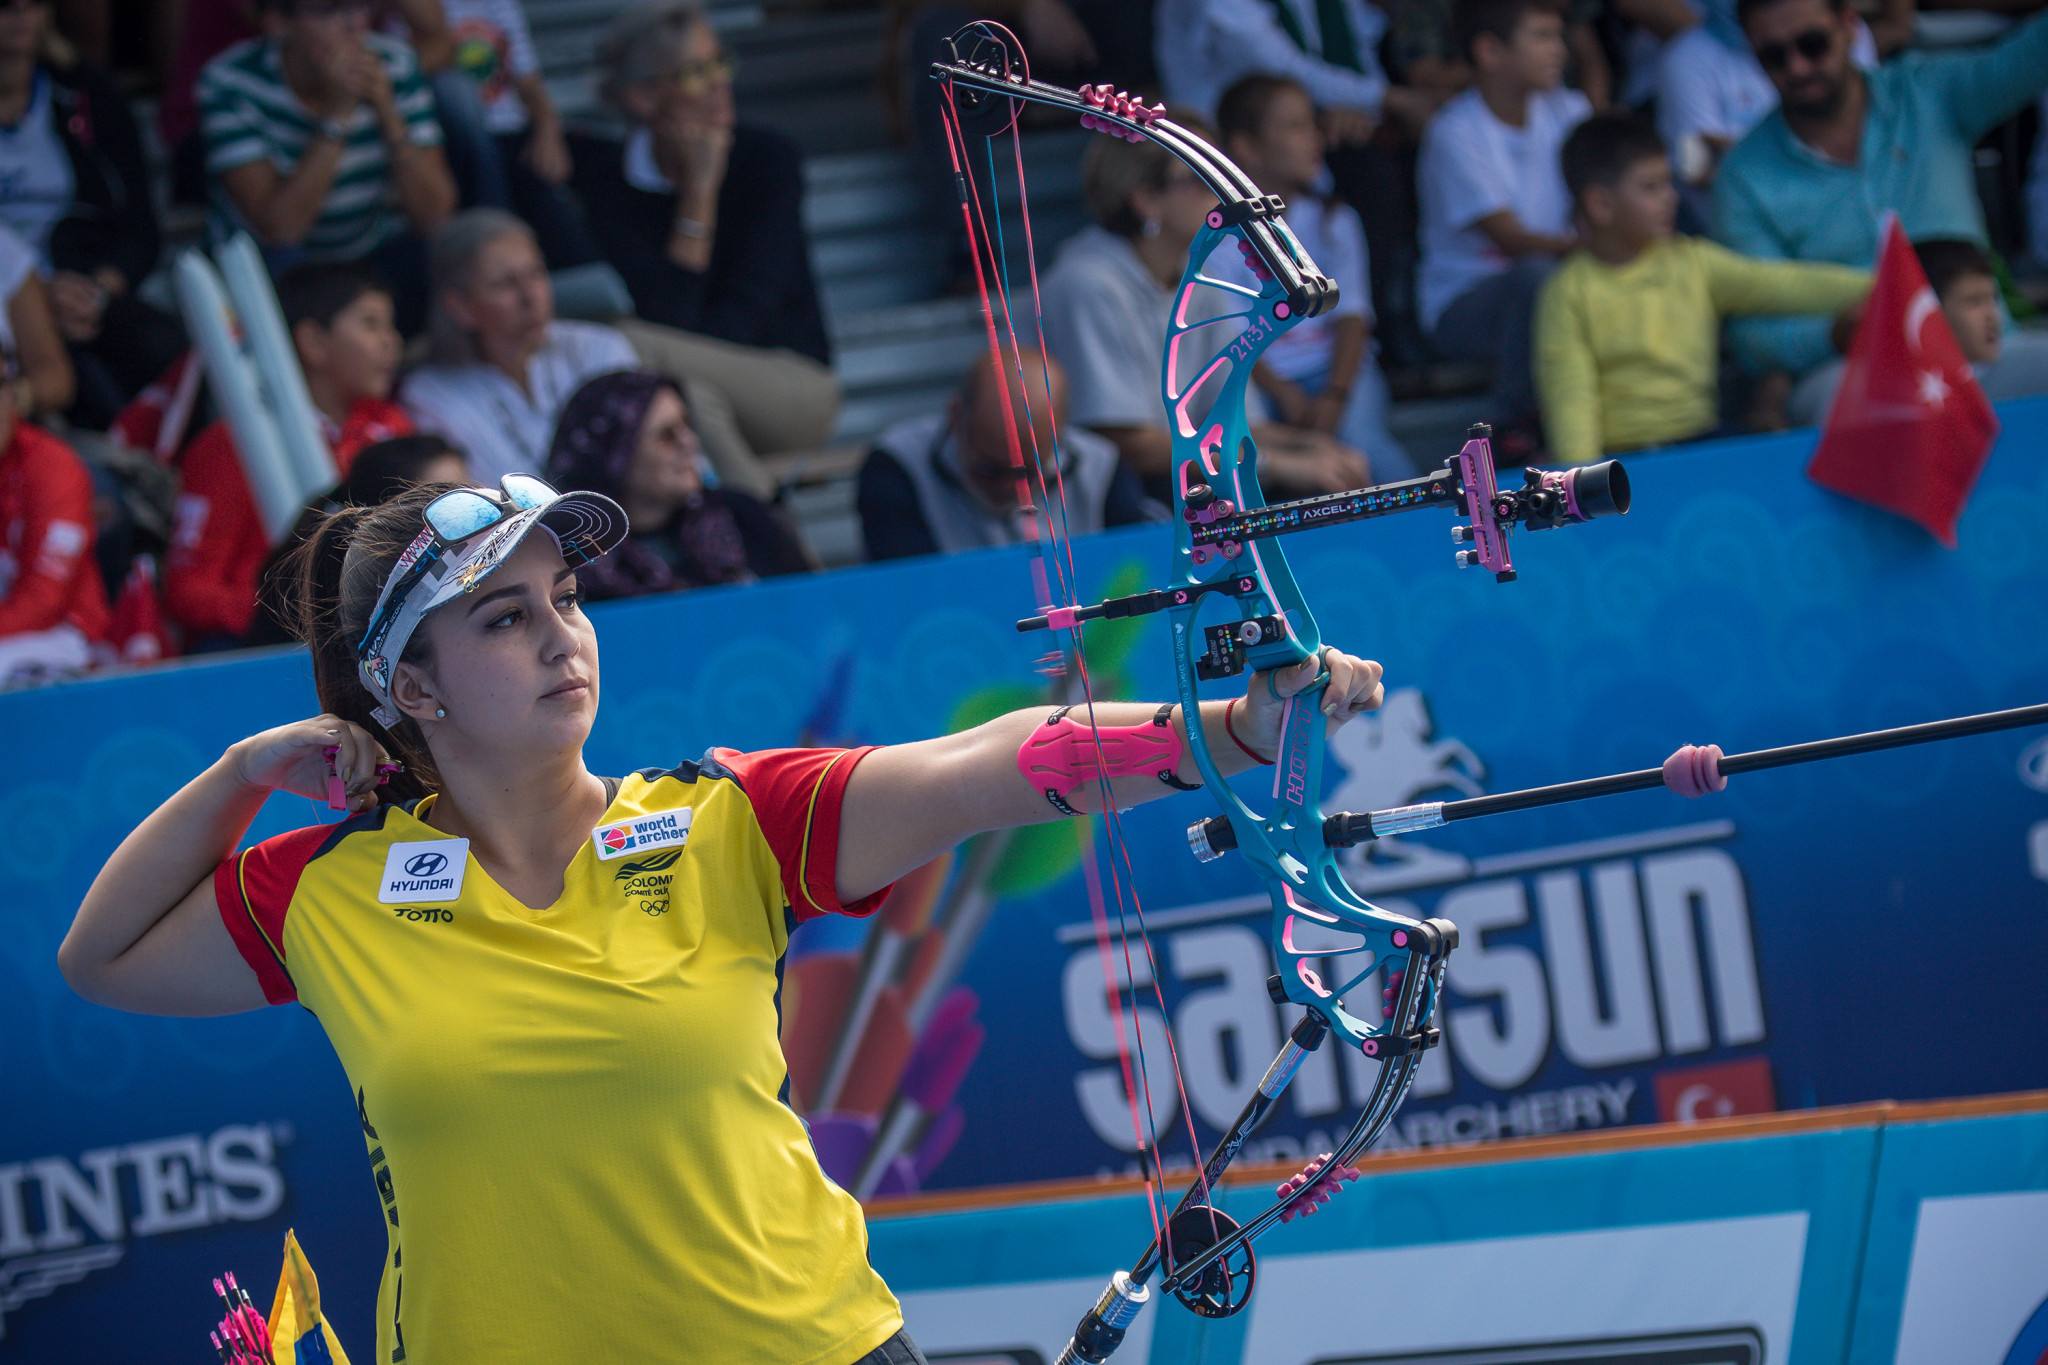 Sara Lopez claimed the women's compound archer prize for the fourth straight year ©Getty Images